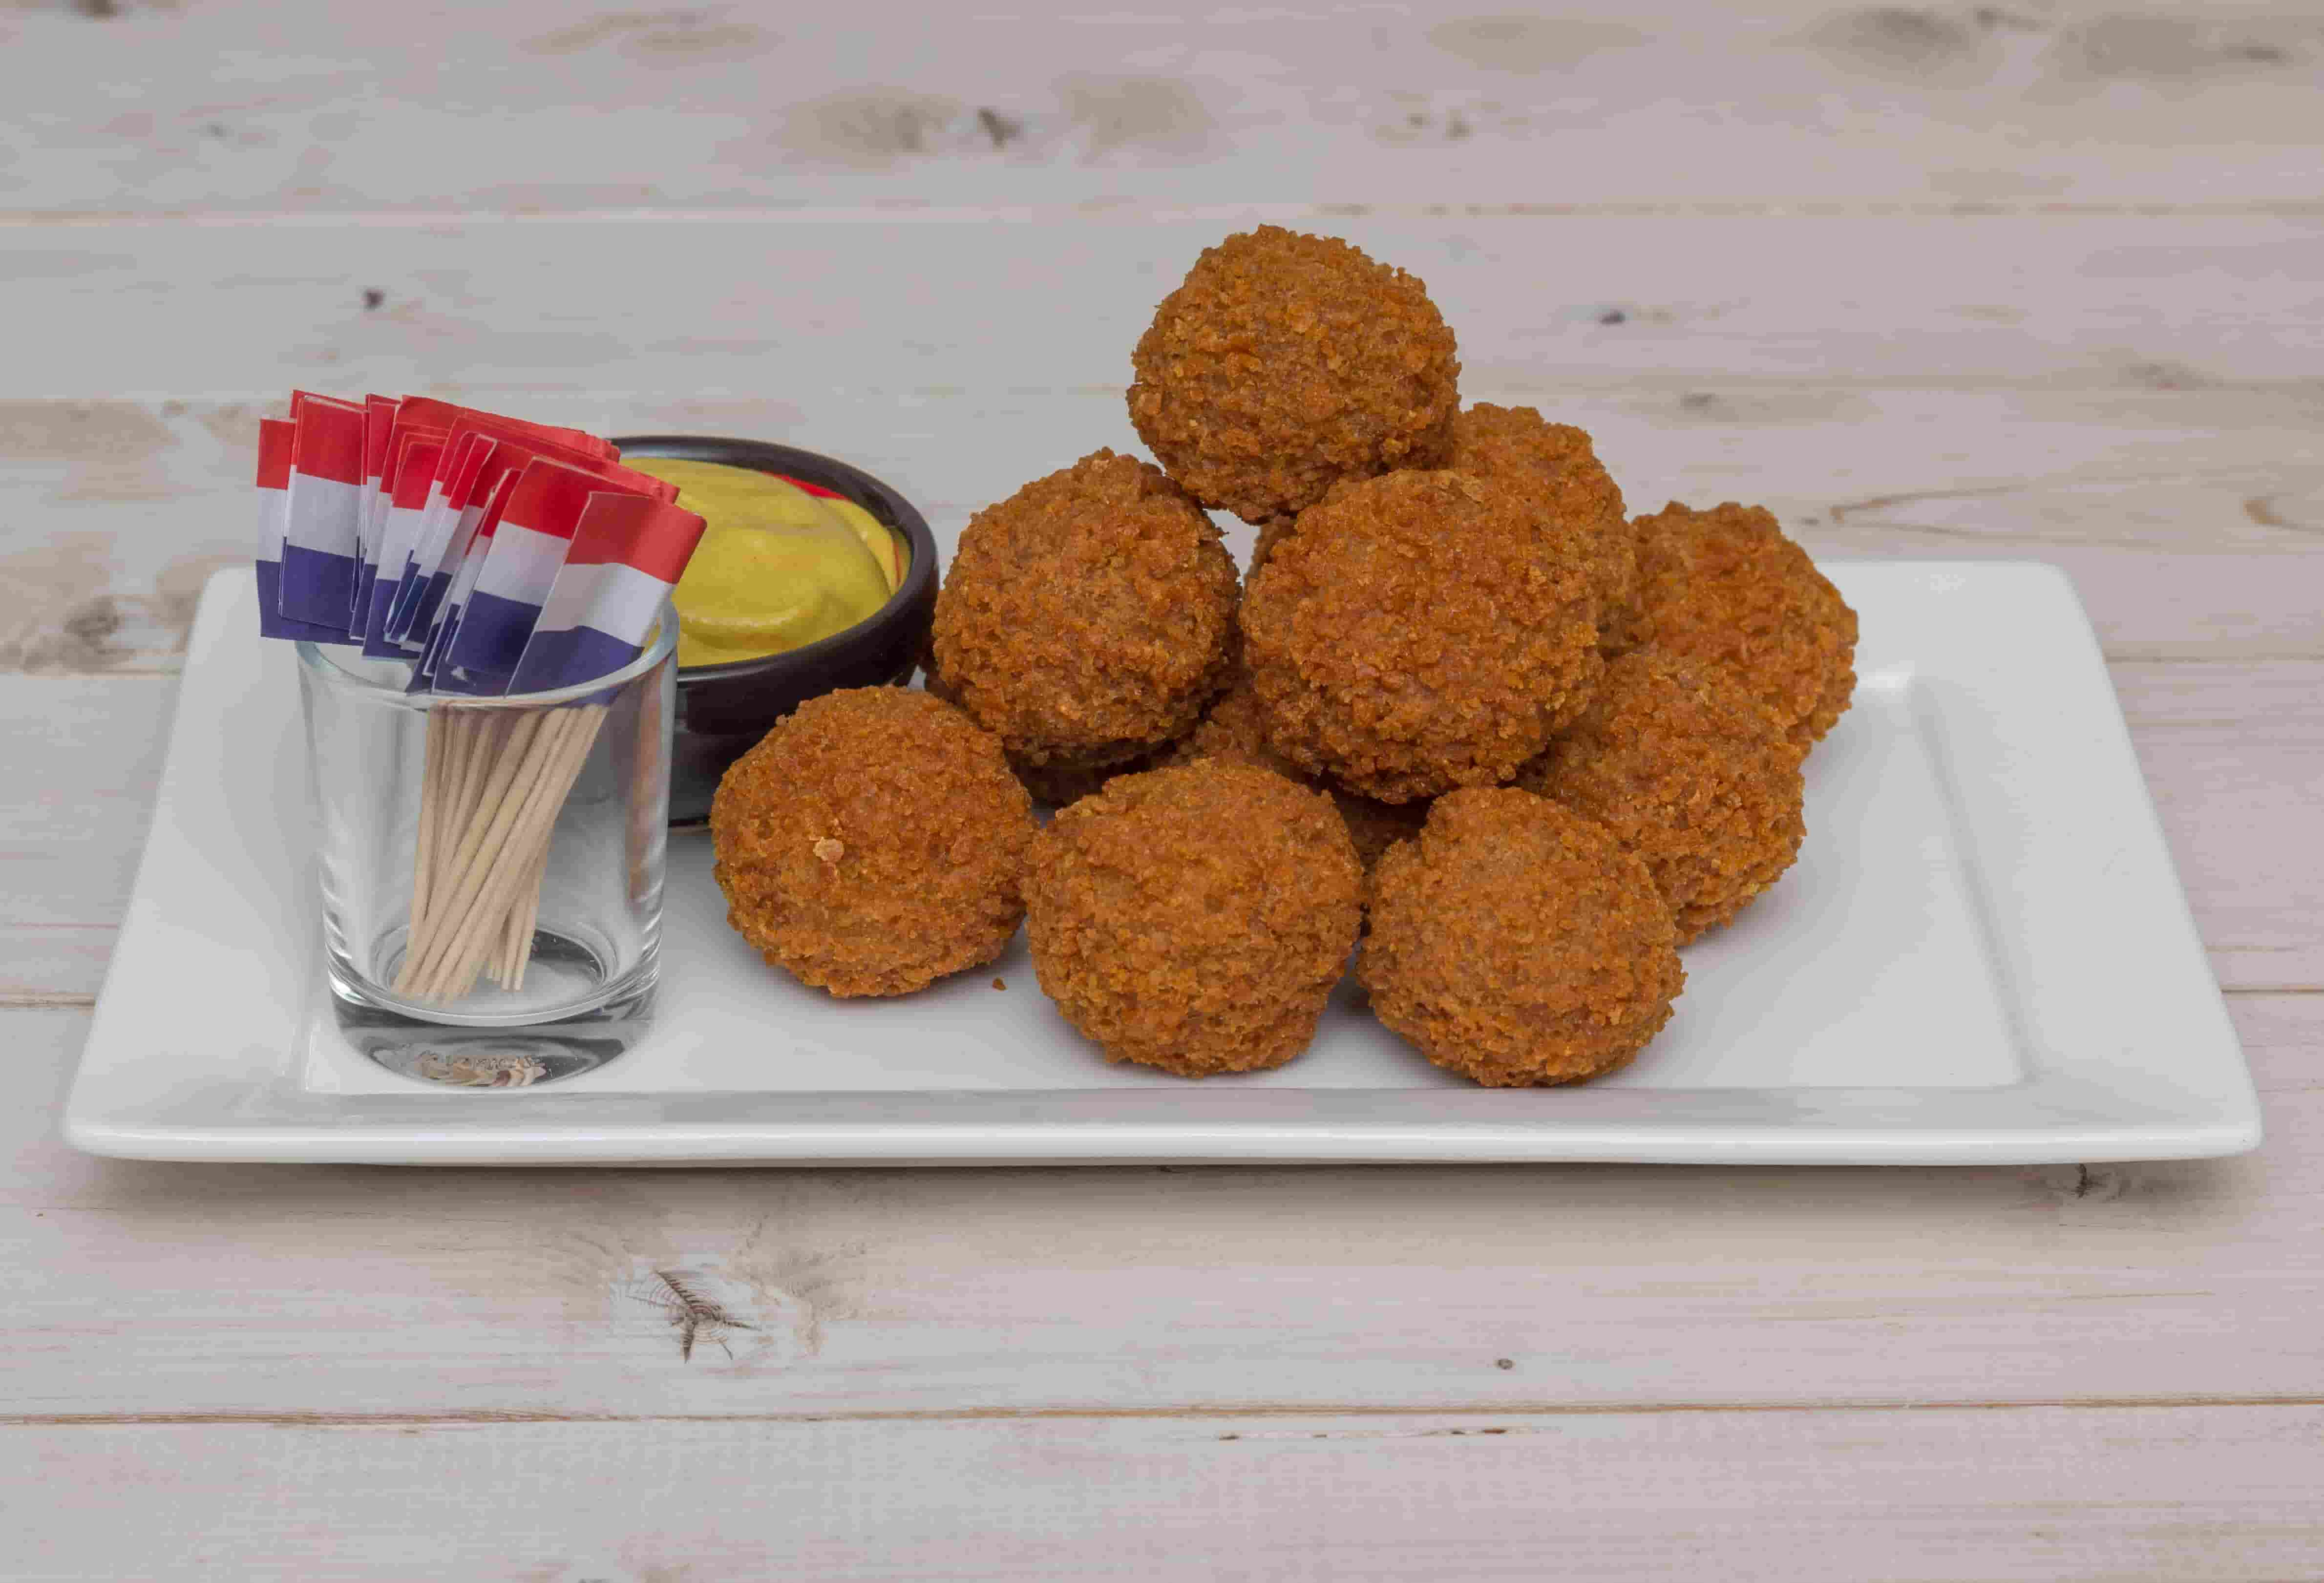 10 delicious dutch dishes and recipes for chf guests the netherlands is a land of many qualities with its incredible landscapes exciting nightlife and many historical monuments museums and galleries forumfinder Choice Image